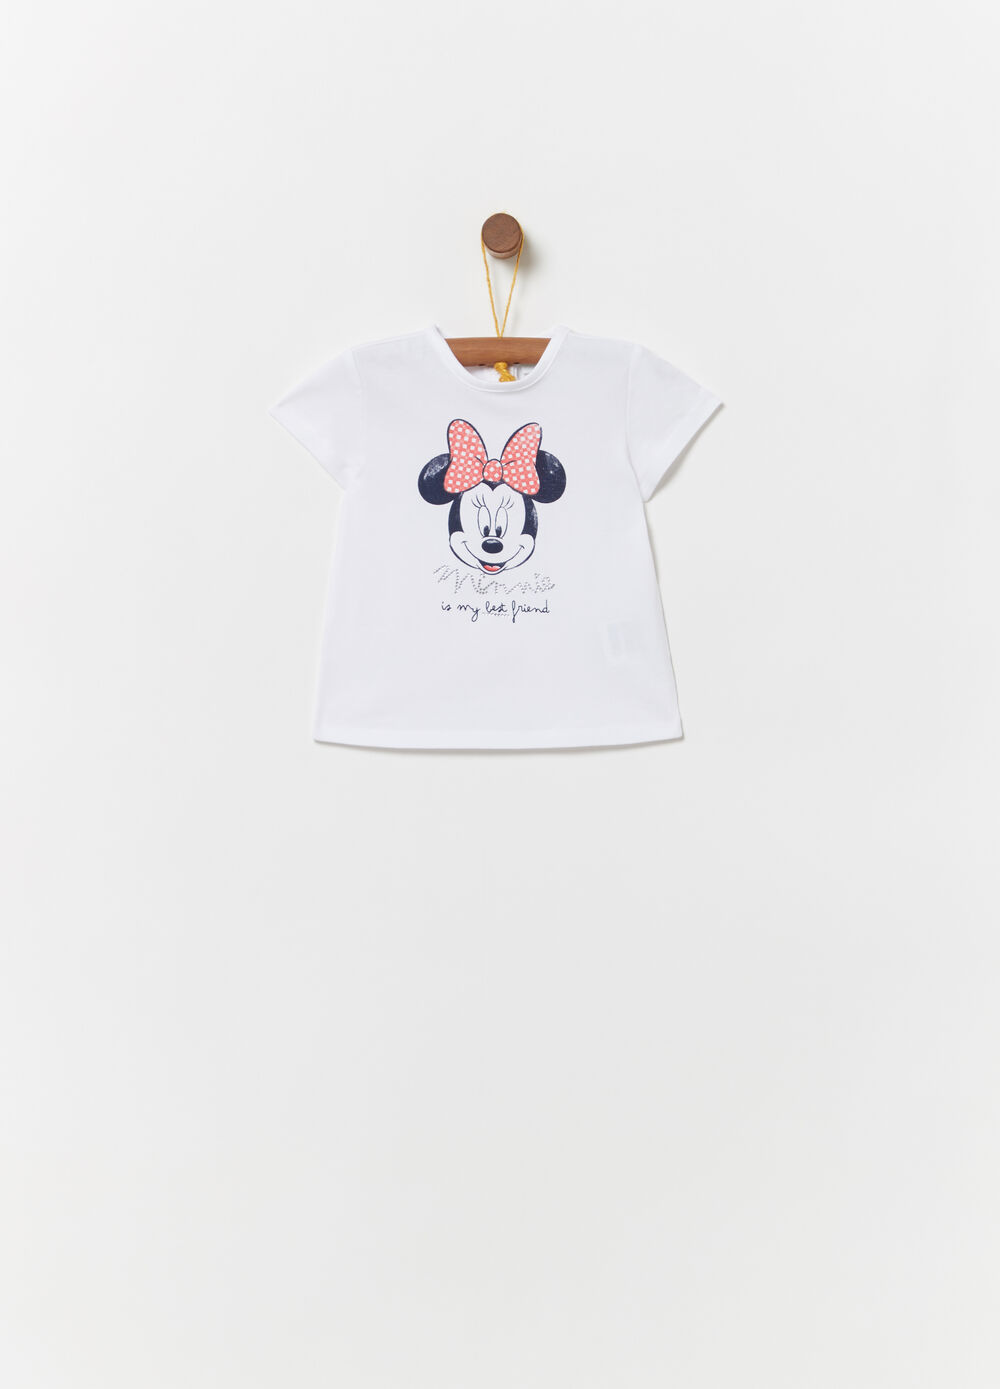 T-shirt with Disney Baby Minnie Mouse print